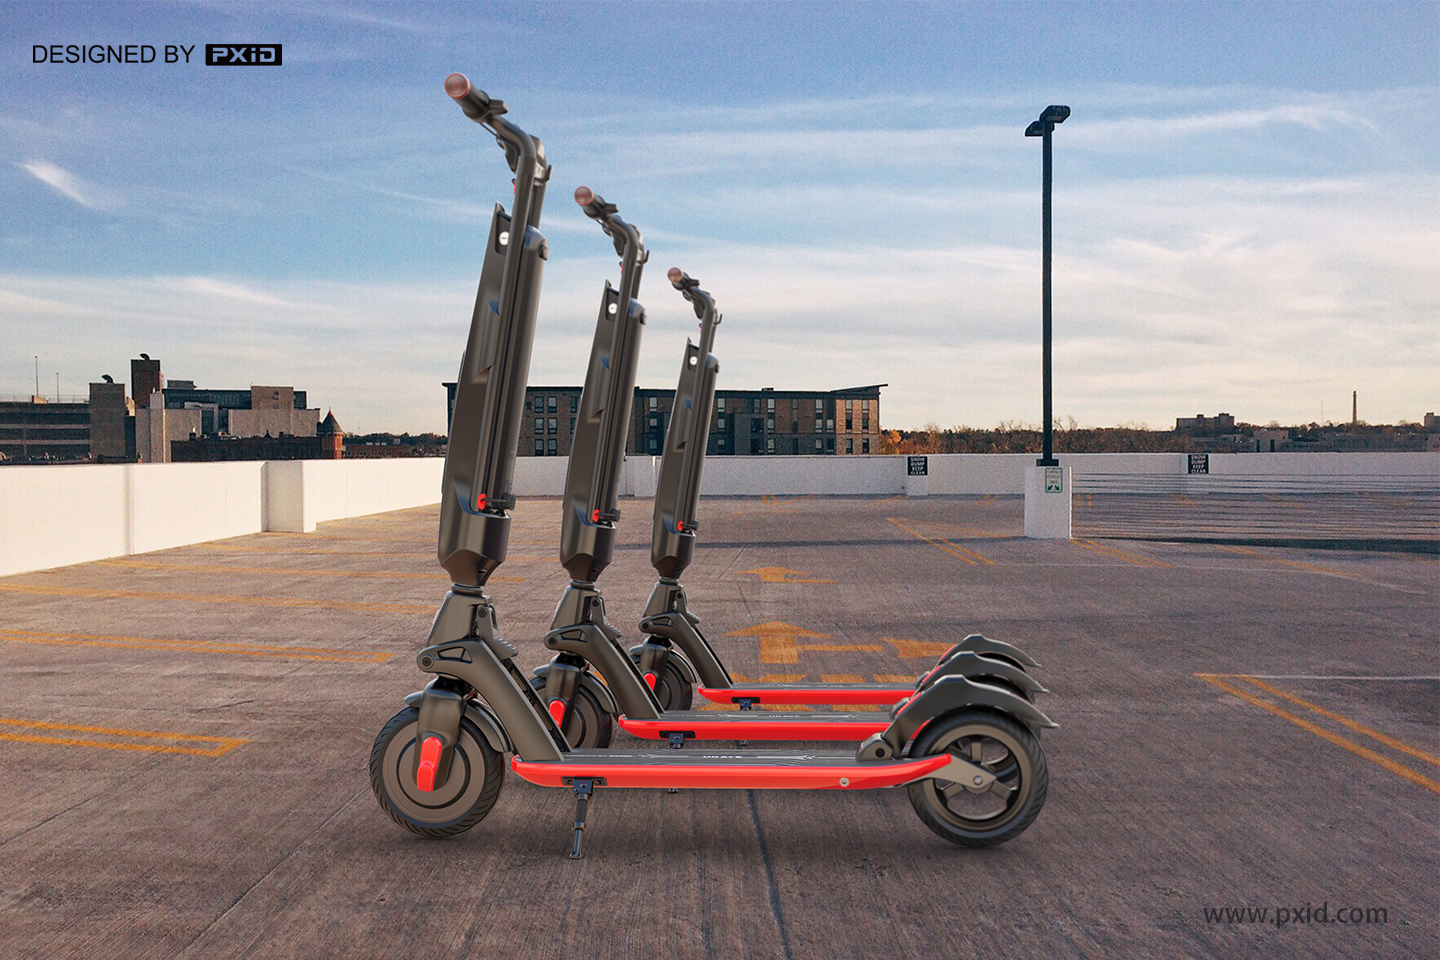 Share Electric Scooter Company Bird Announces Financing $275 Million